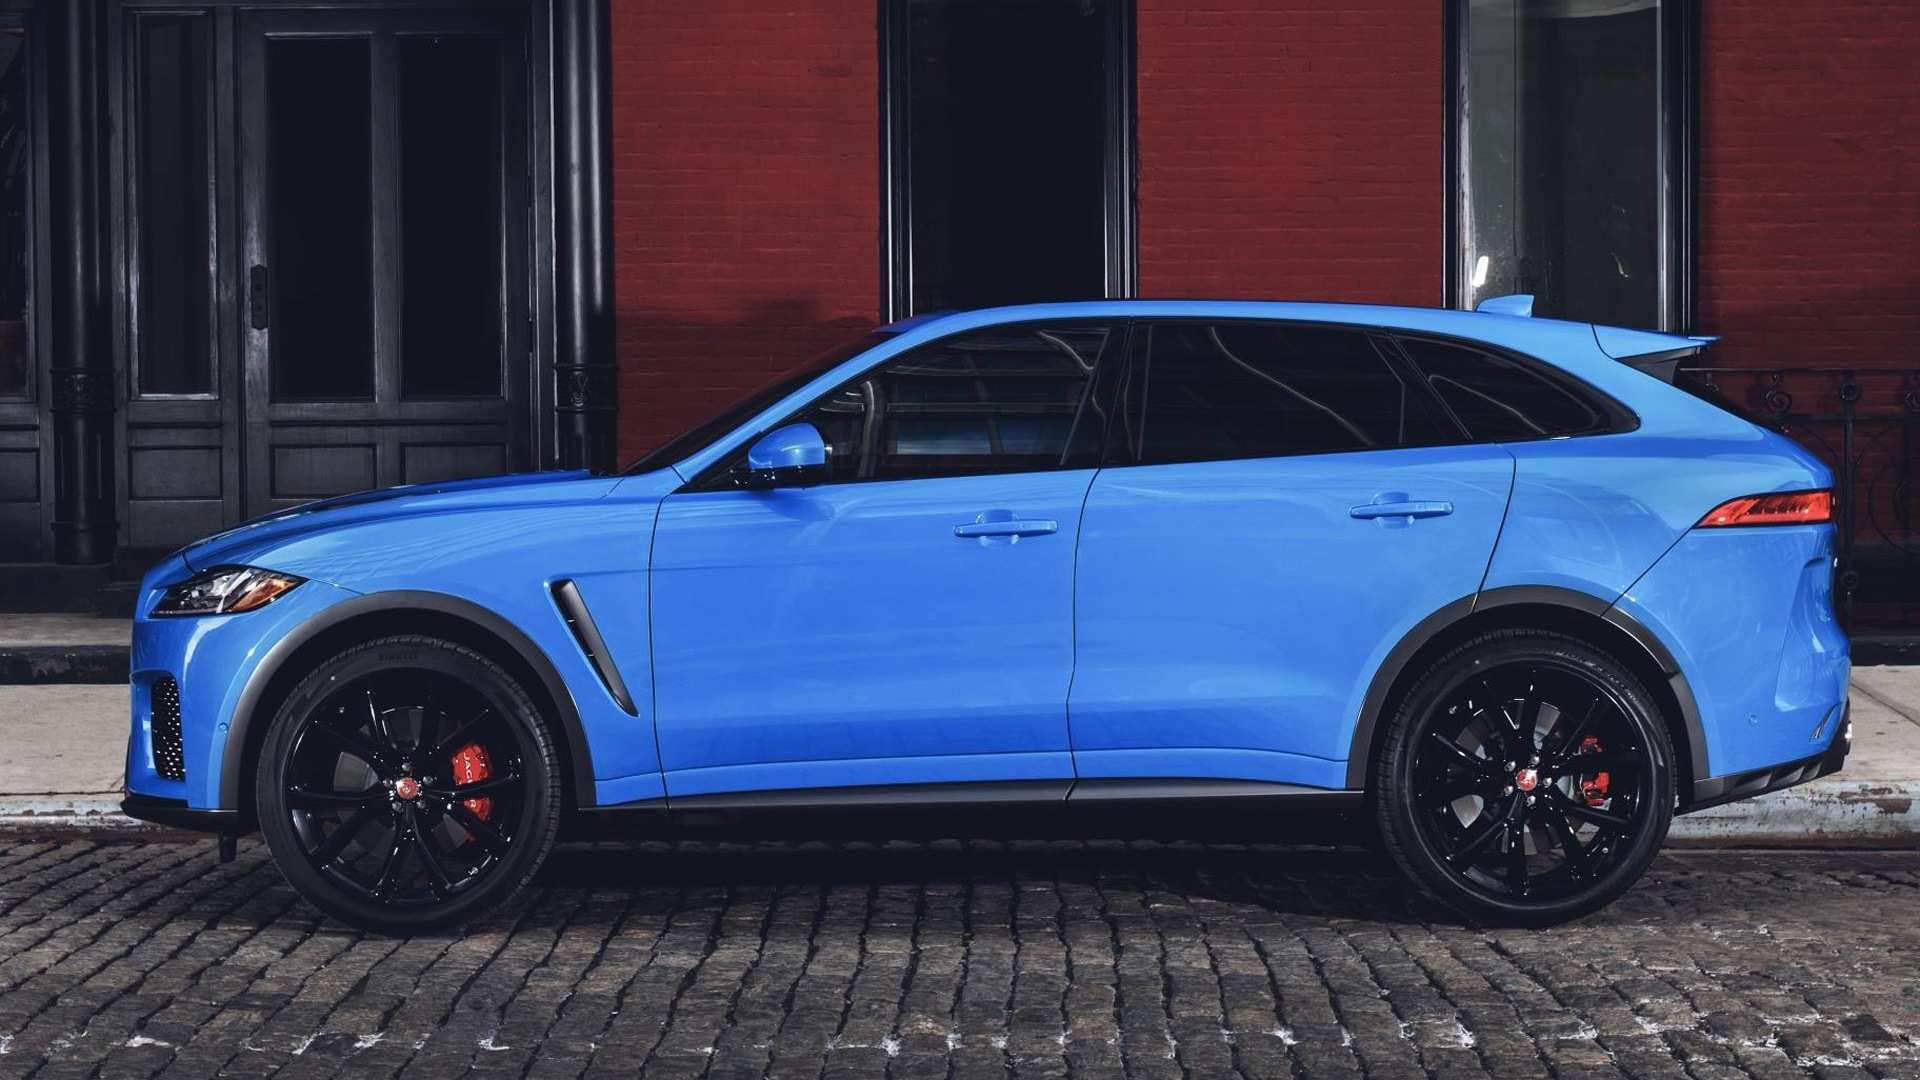 29 All New 2019 Jaguar F Pace Svr Price Price Specs by 2019 Jaguar F Pace Svr Price Price